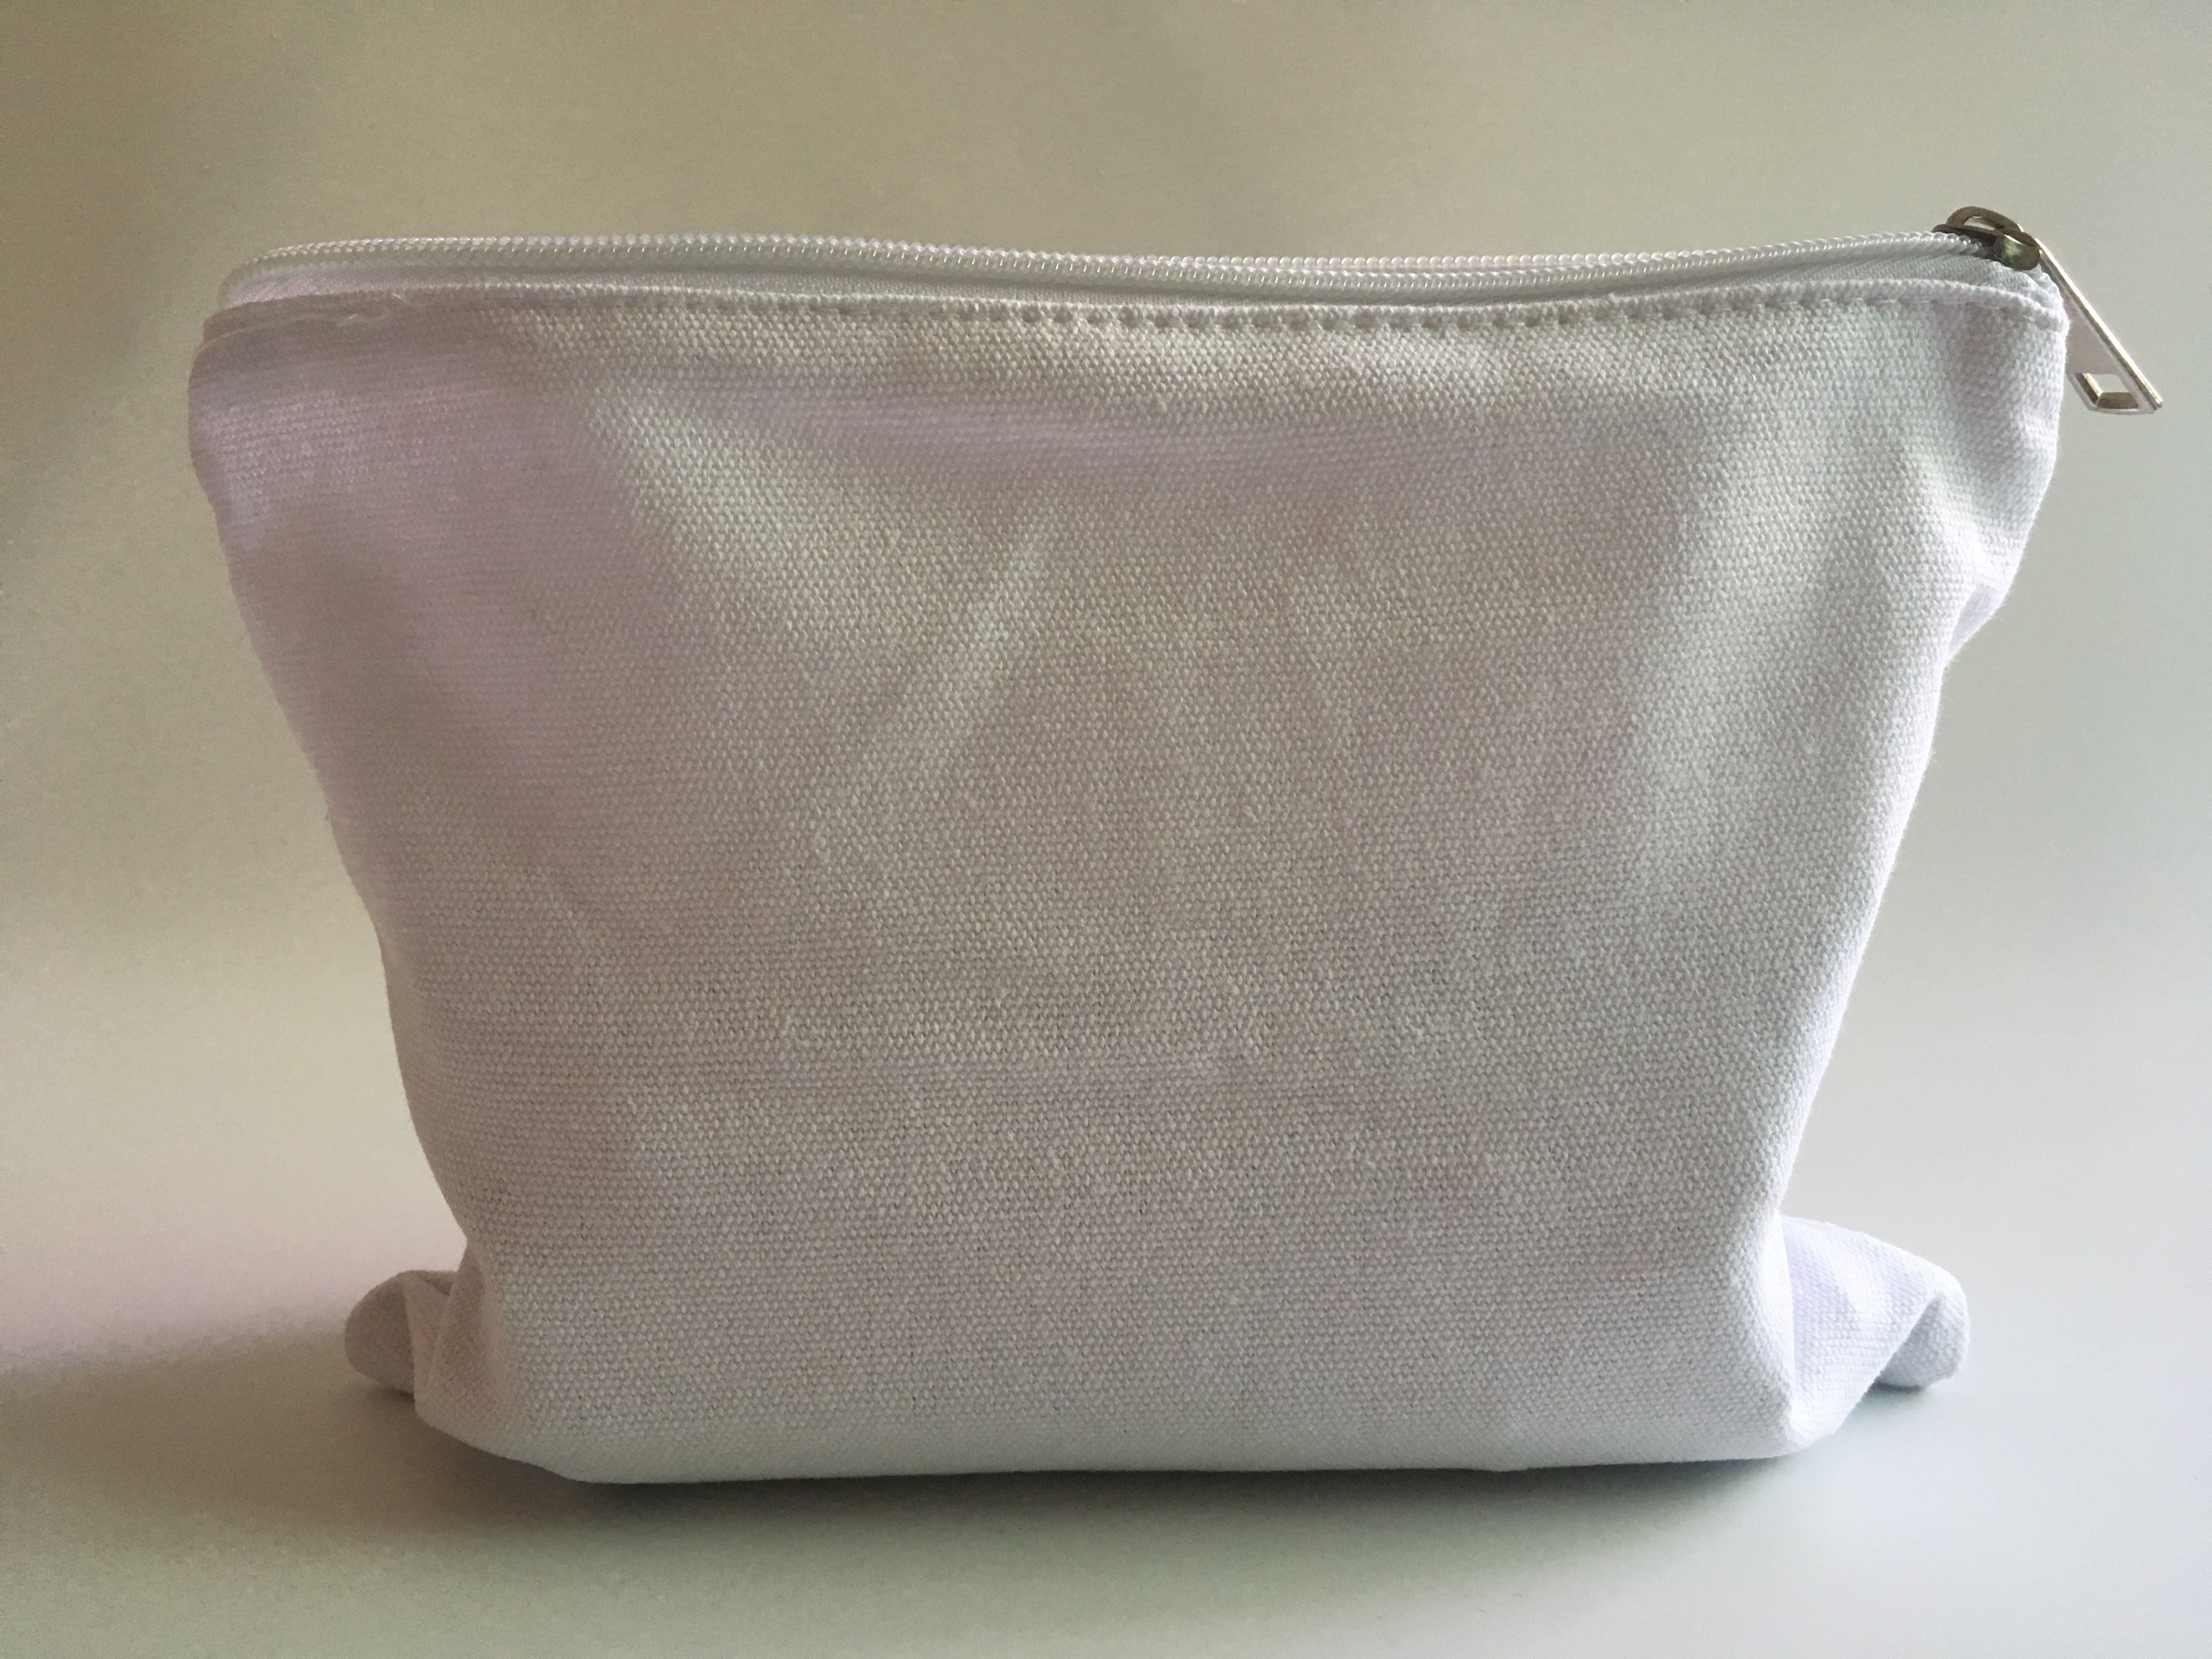 9*7 inch white color canvas makeup bag with low MOQ